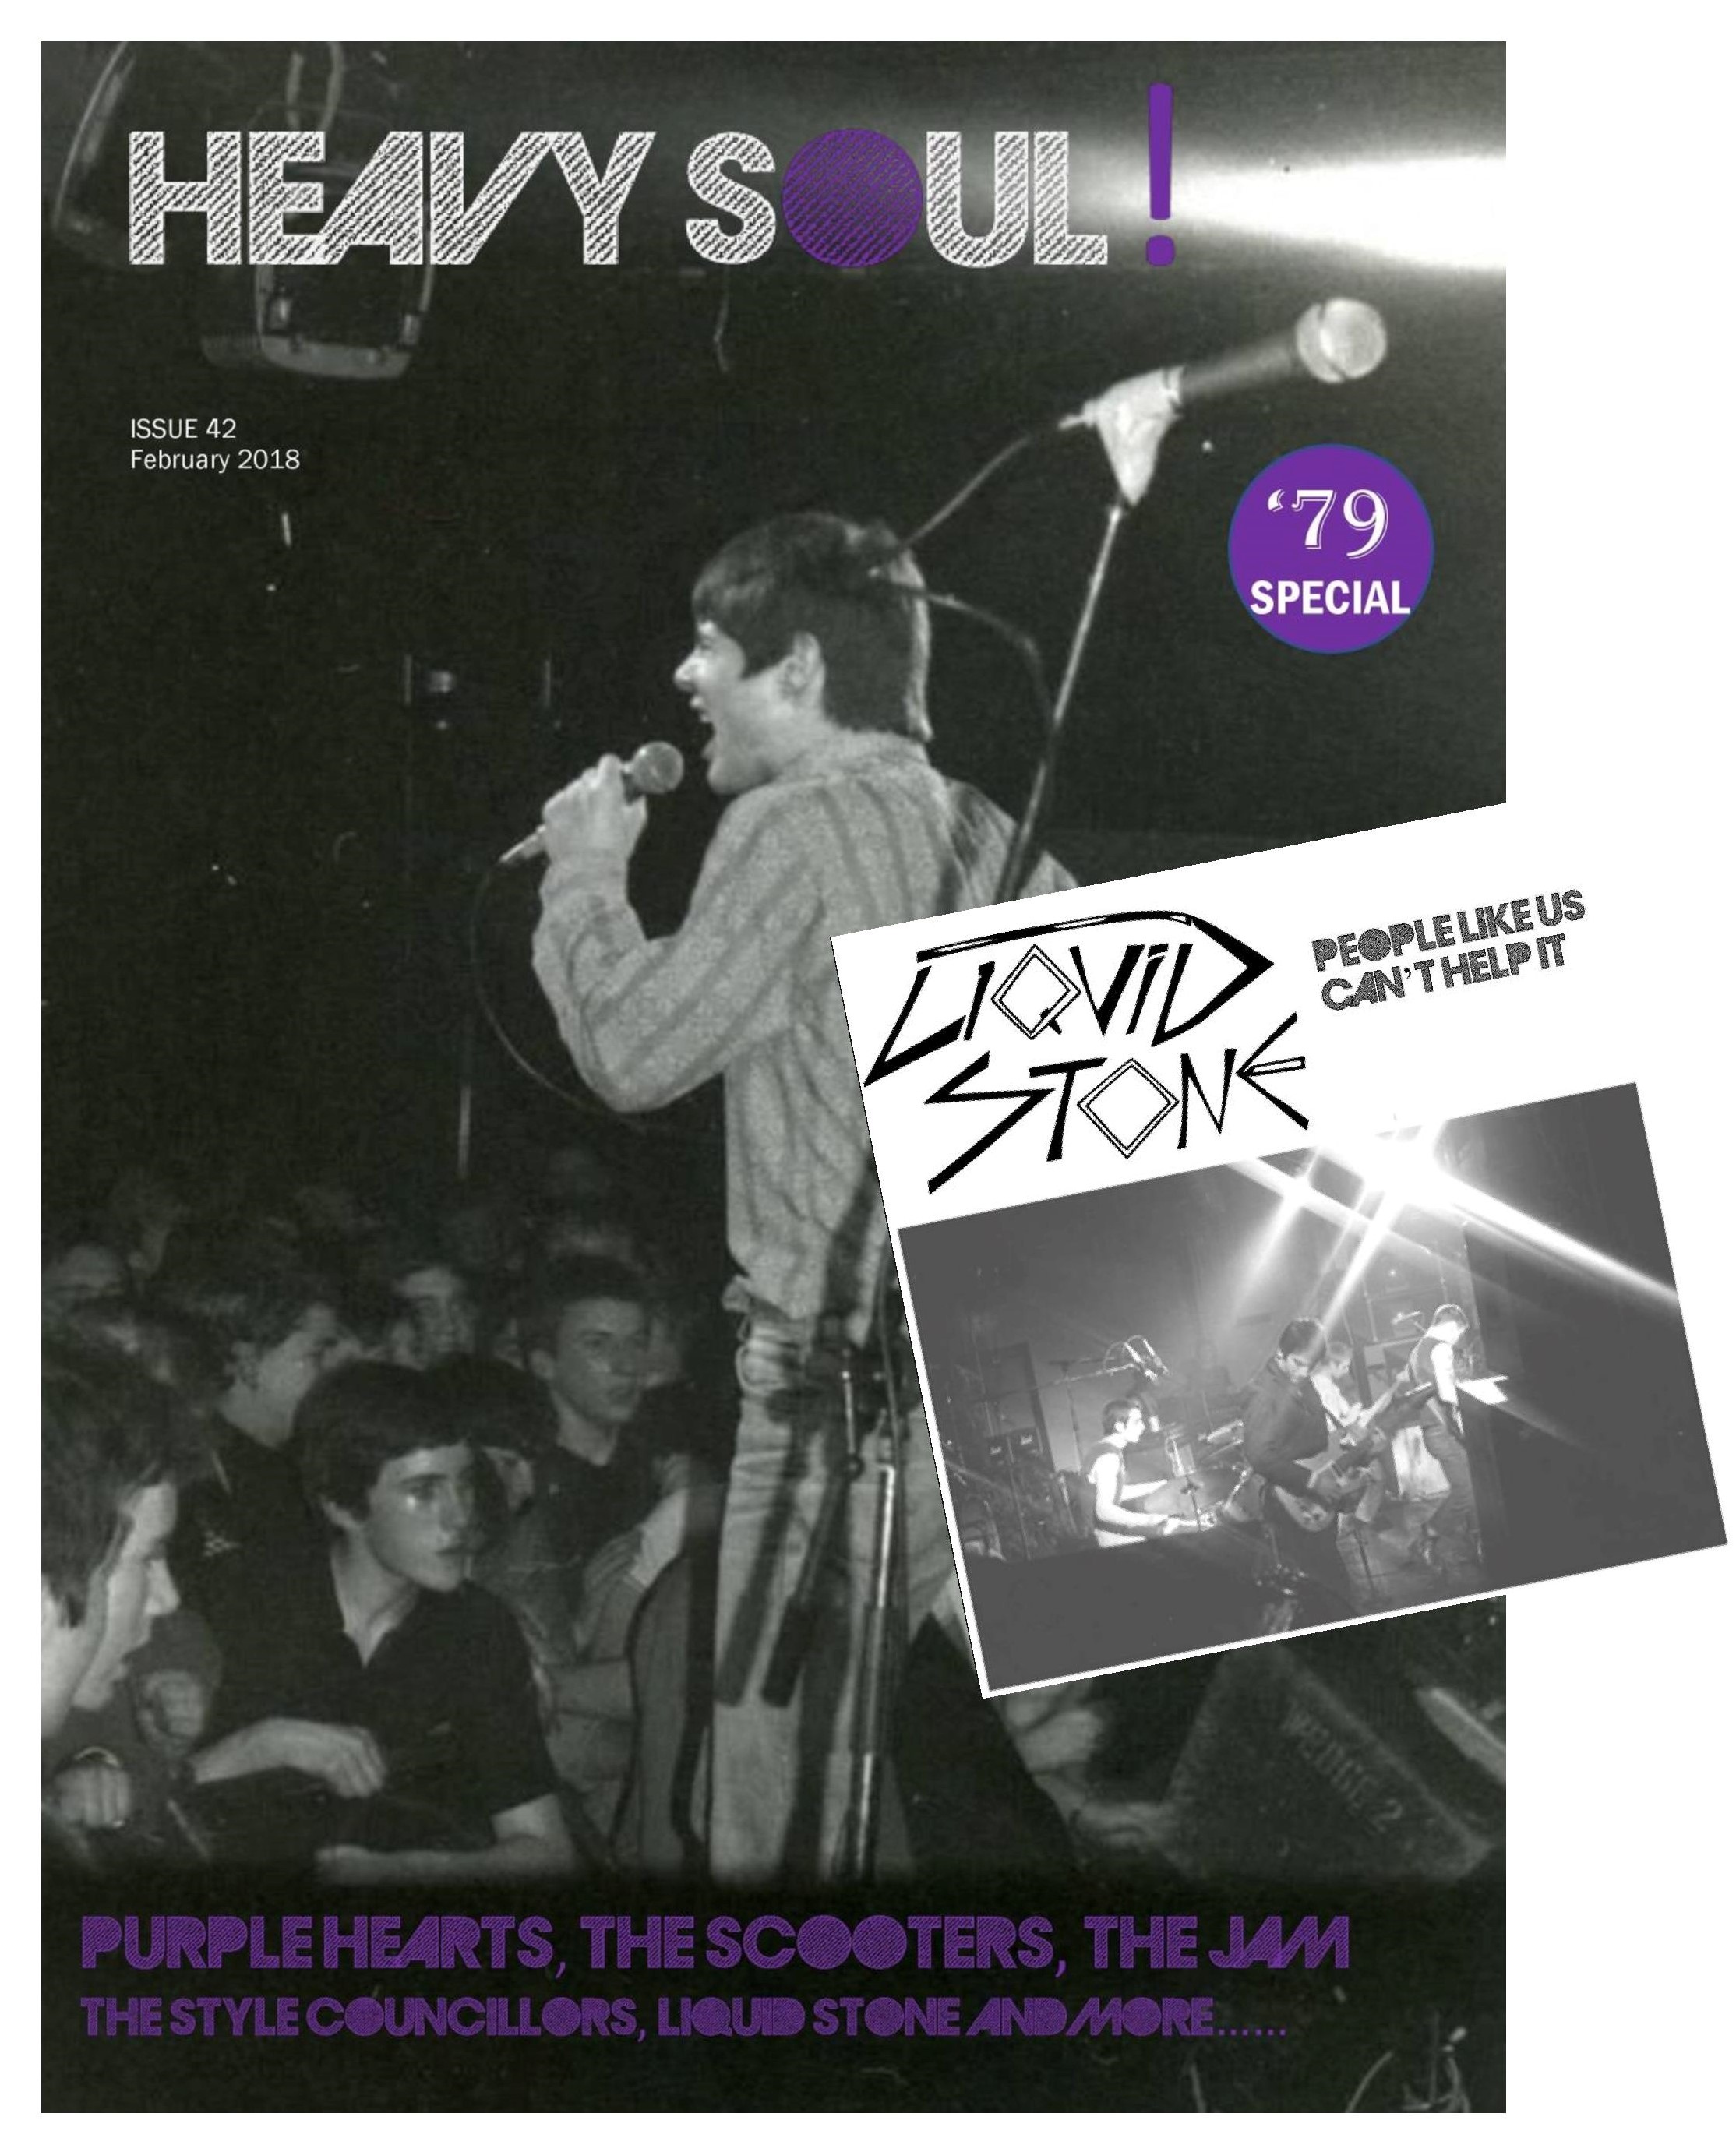 HEAVY SOUL MODZINE Issue 41 + LIQUID STONE 7